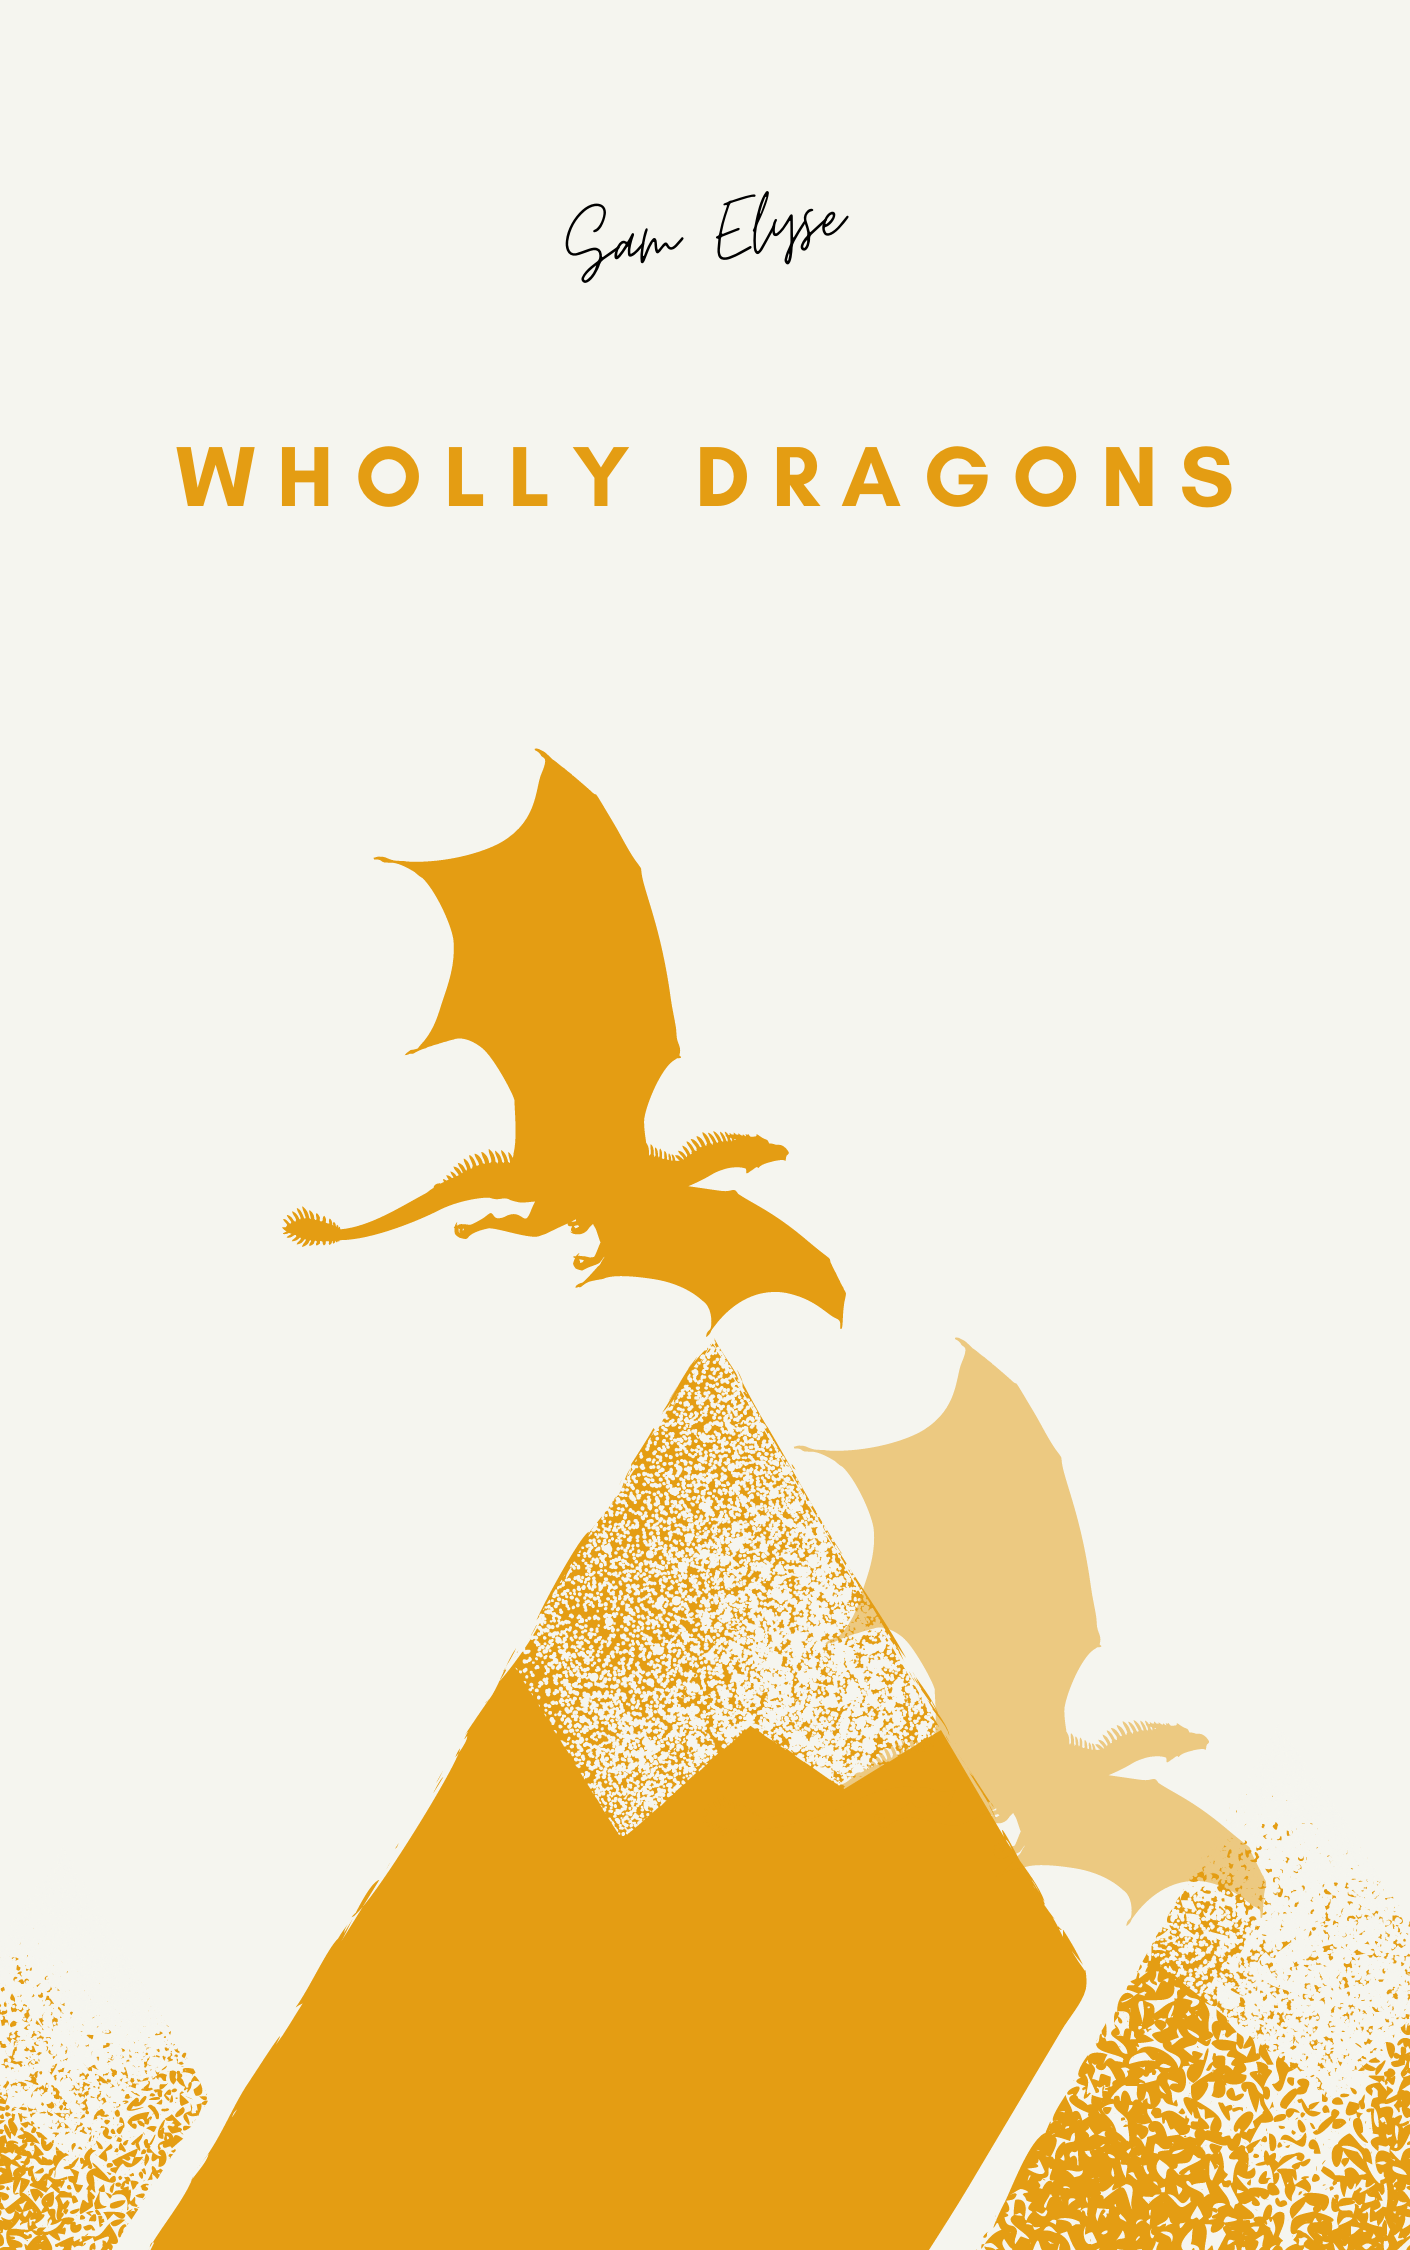 Wholly Dragons